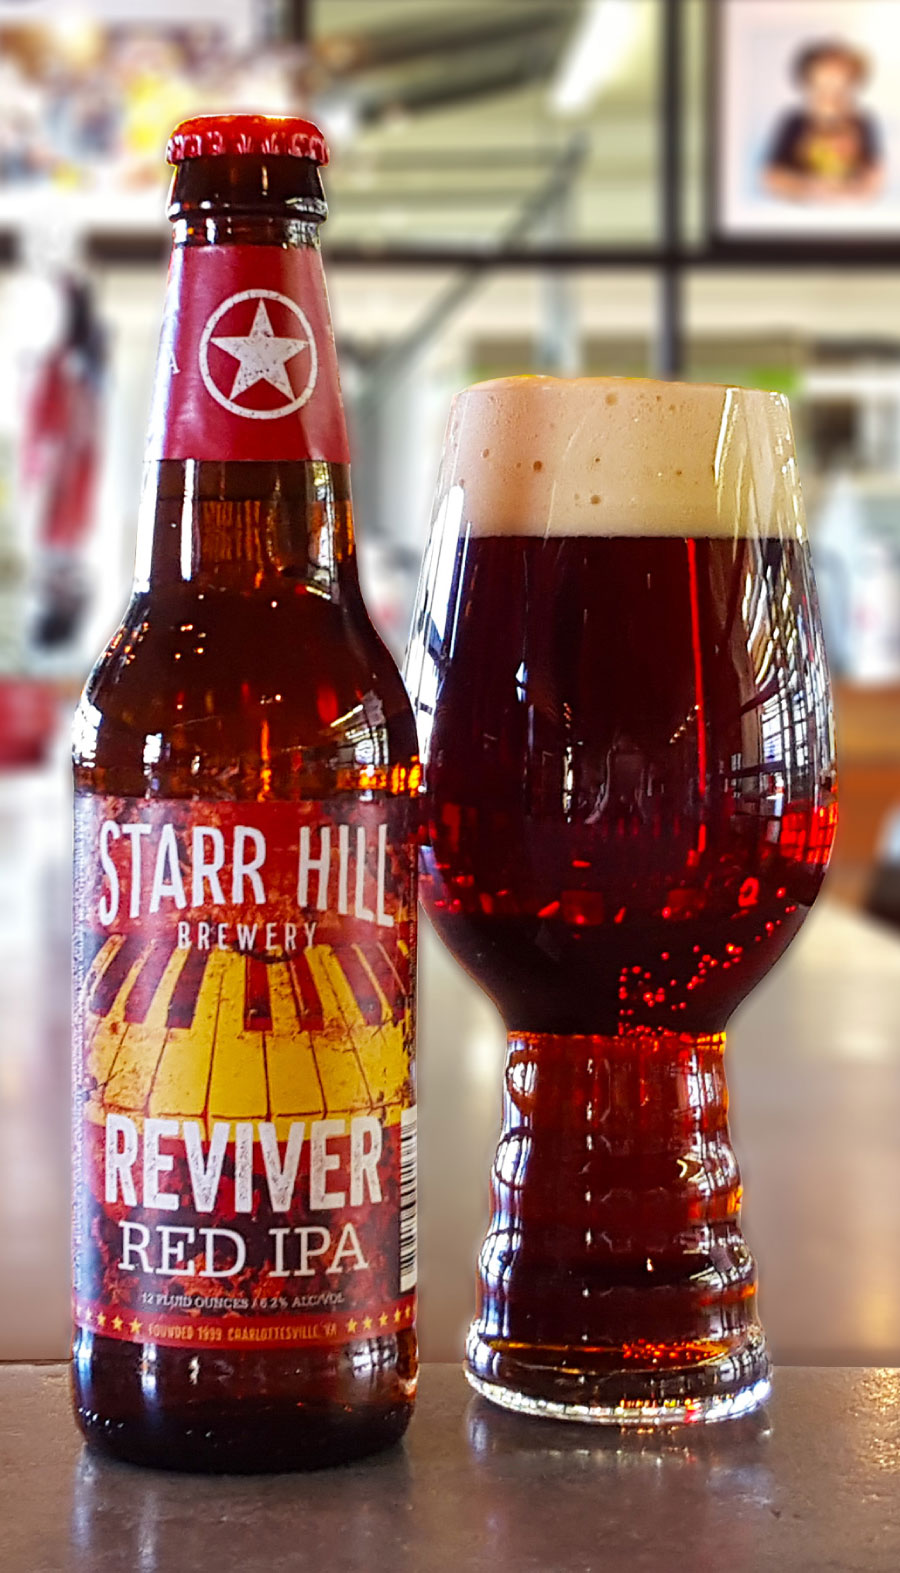 Reviver Red IPA is Spring seasonal that masterfully combines the malty qualities of an amber ale with the citrus and pine qualities of an American IPA. Click through for full review.